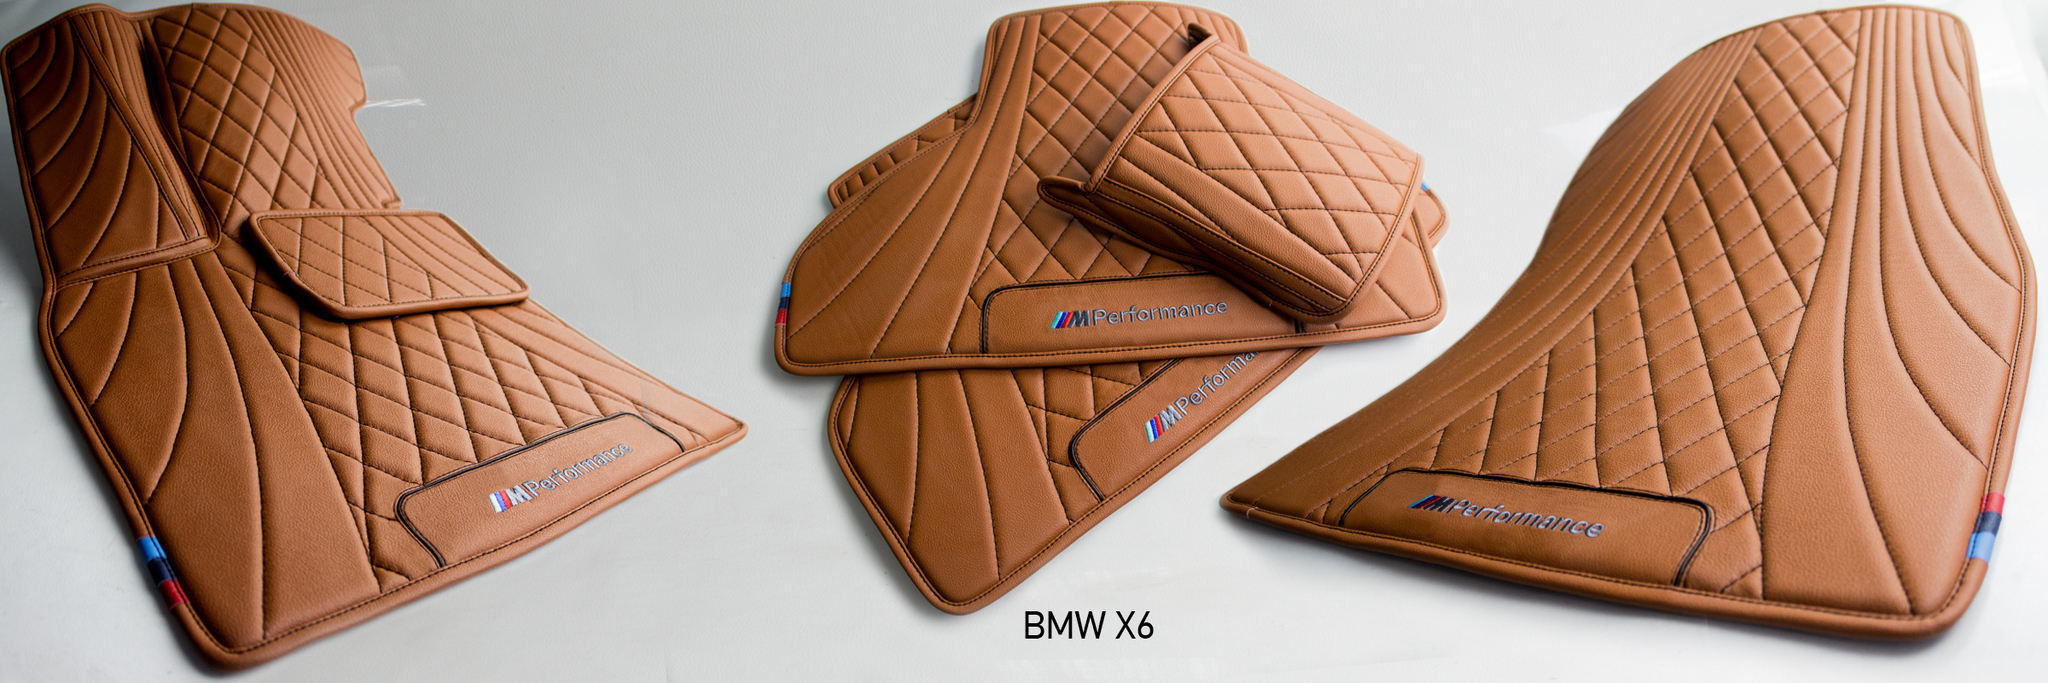 images-products-1-7902-232988382-BMW_X6ss.jpg